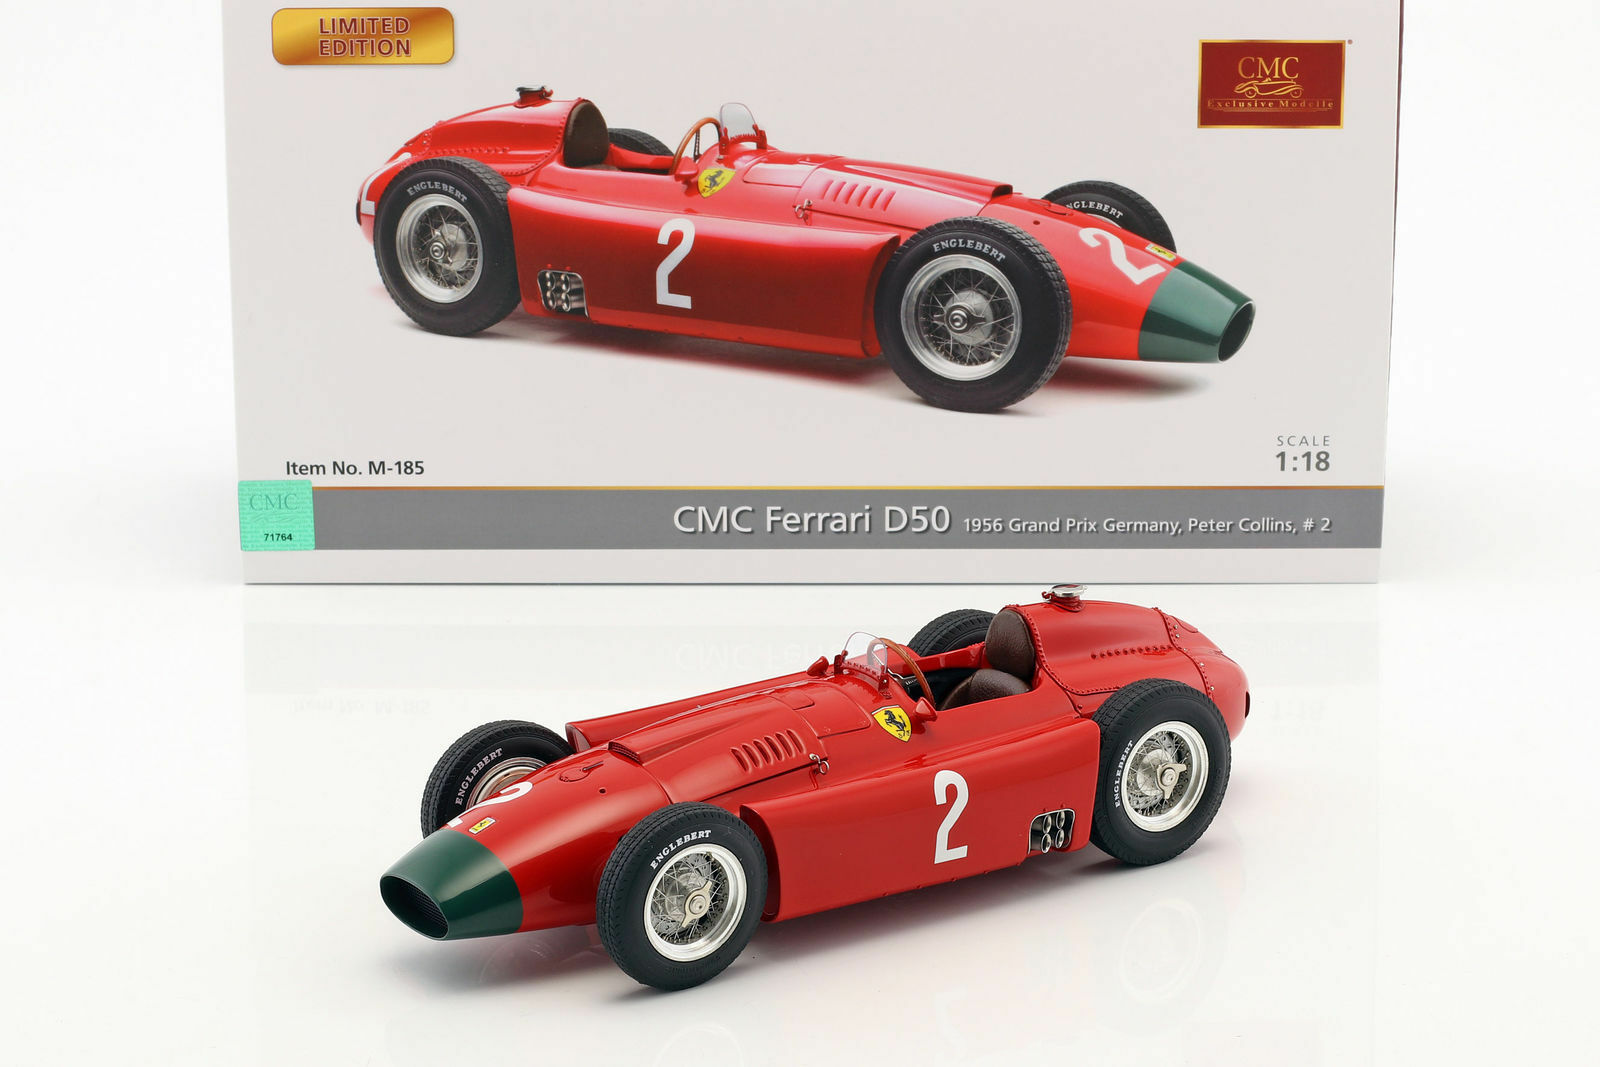 CMC 185 - FERRARI D50 LONG NOSE 2 COLLINS GRAND PRIX ALLEMAGNE 1956  1 18